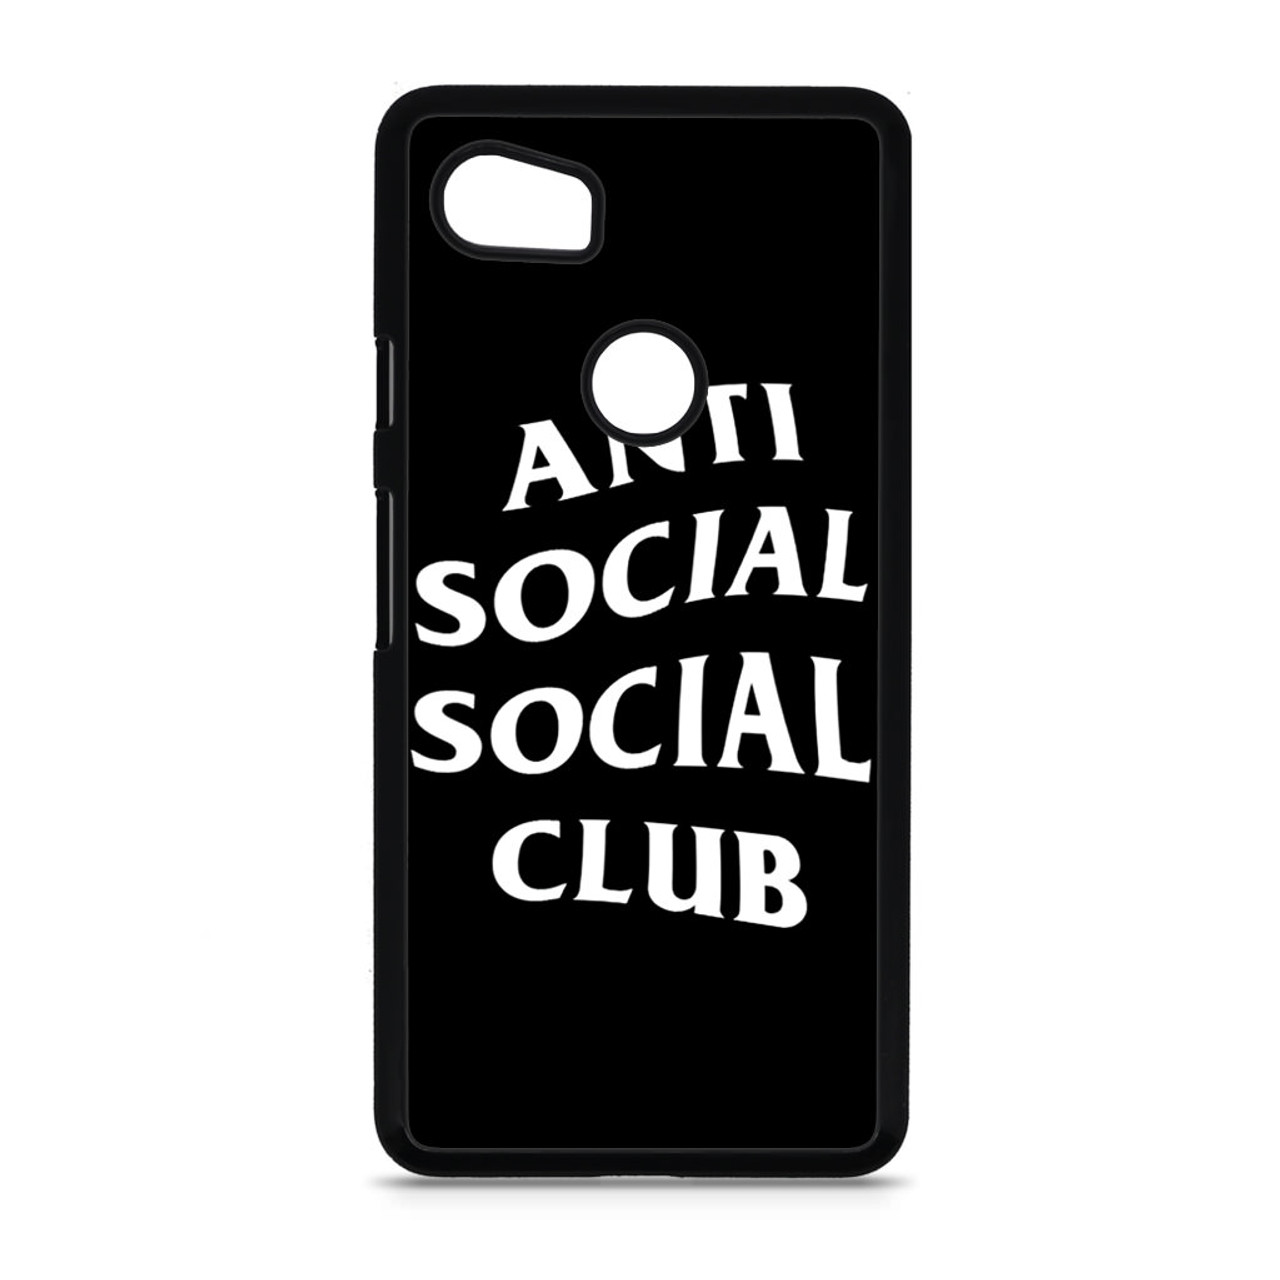 6b20f88b249d Anti Social Social Club Black Google Pixel 2 XL Case - CASESHUNTER